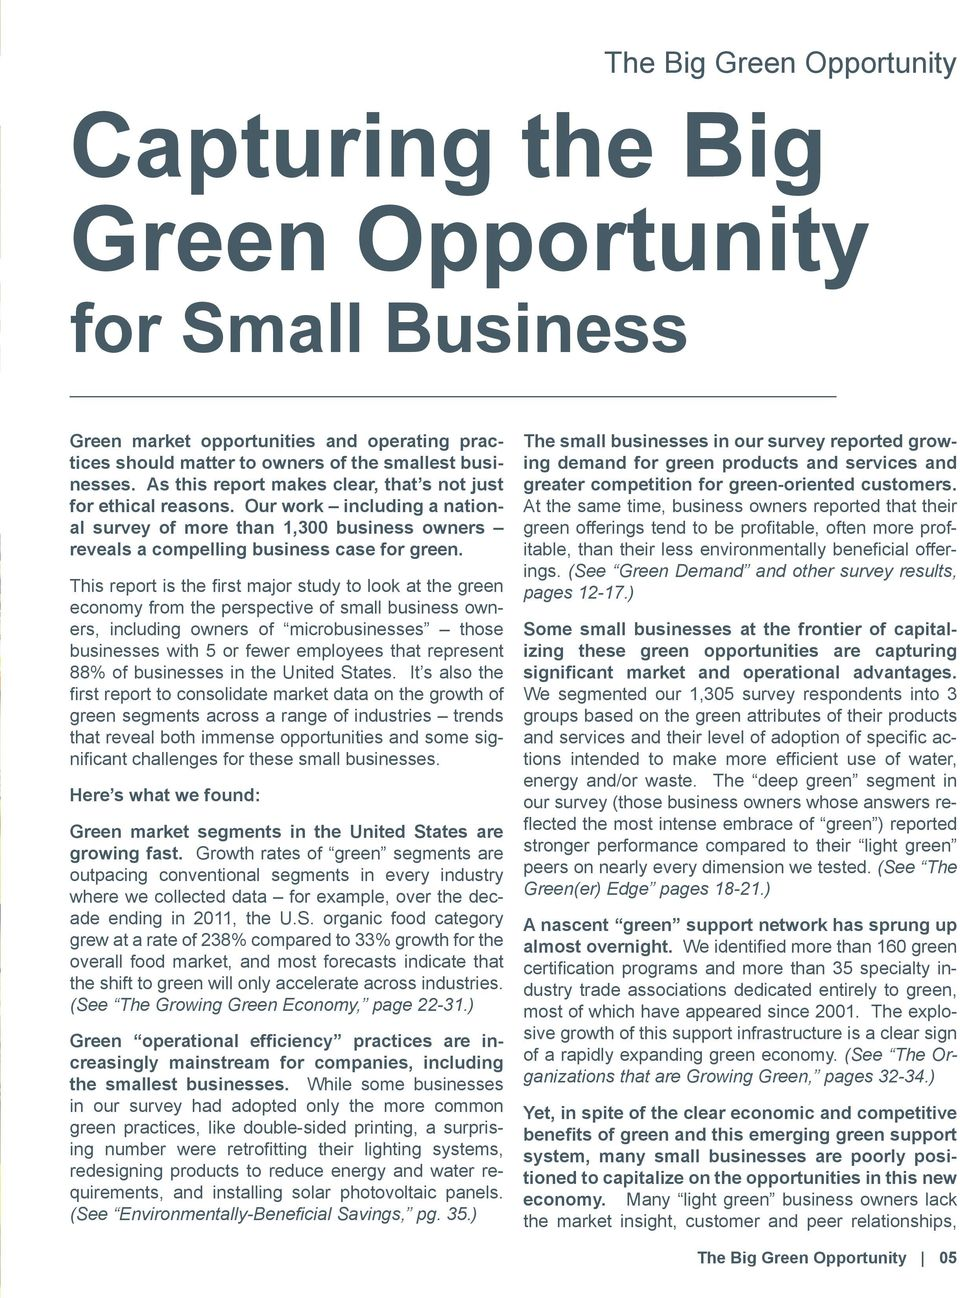 This report is the first major study to look at the green economy from the perspective of small business owners, including owners of microbusinesses those businesses with 5 or fewer employees that